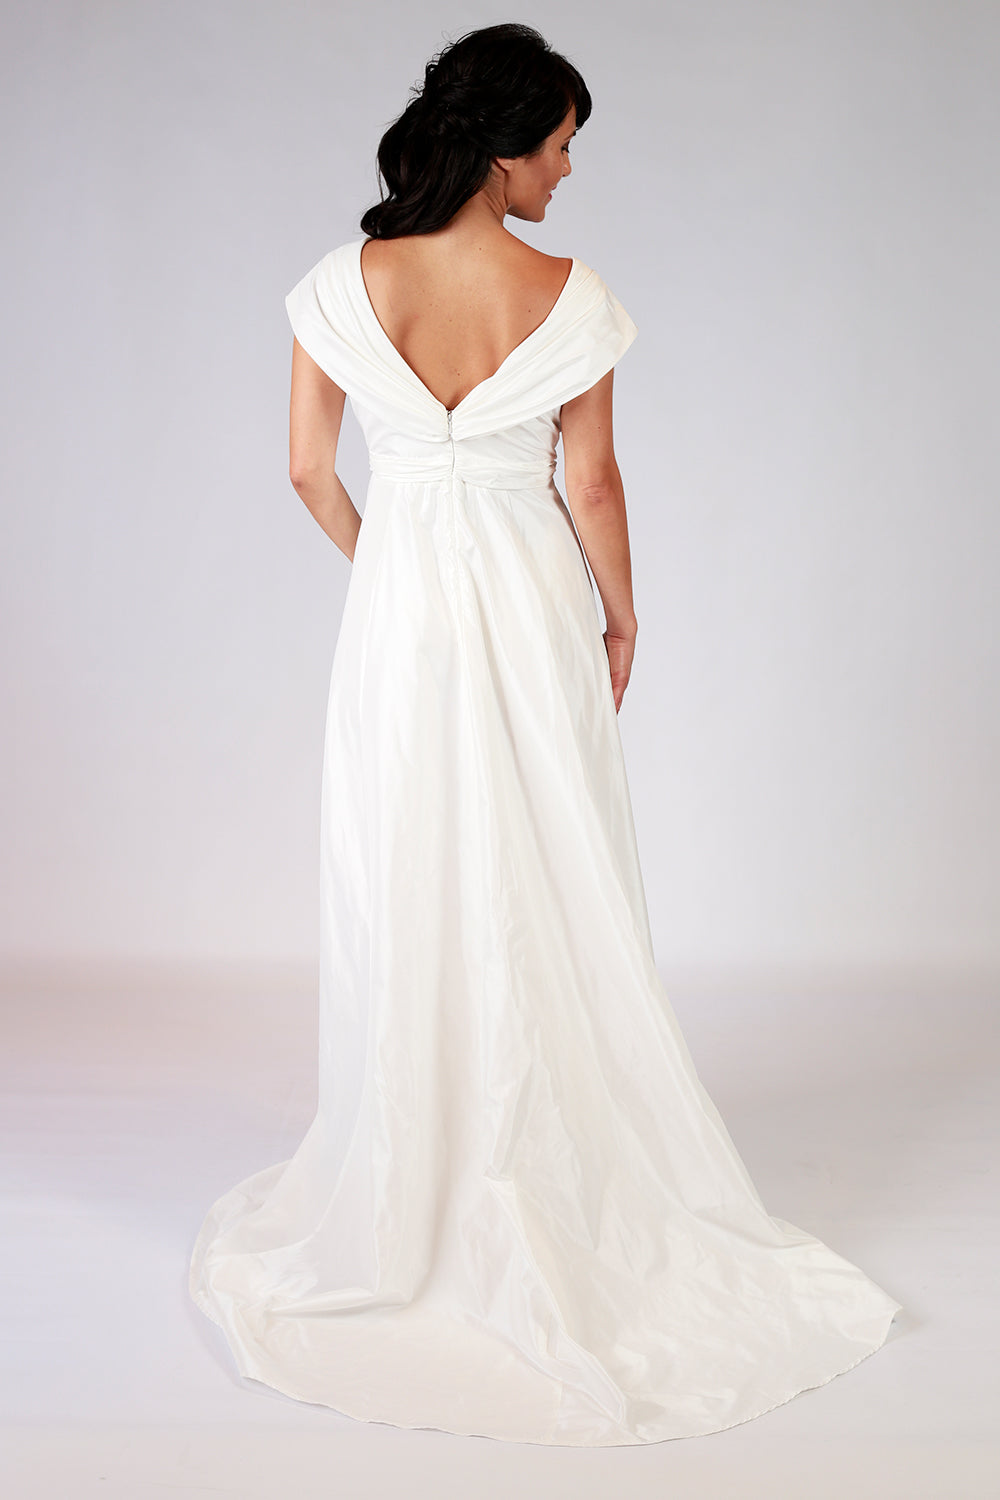 Orchid Dreams Wedding Dress